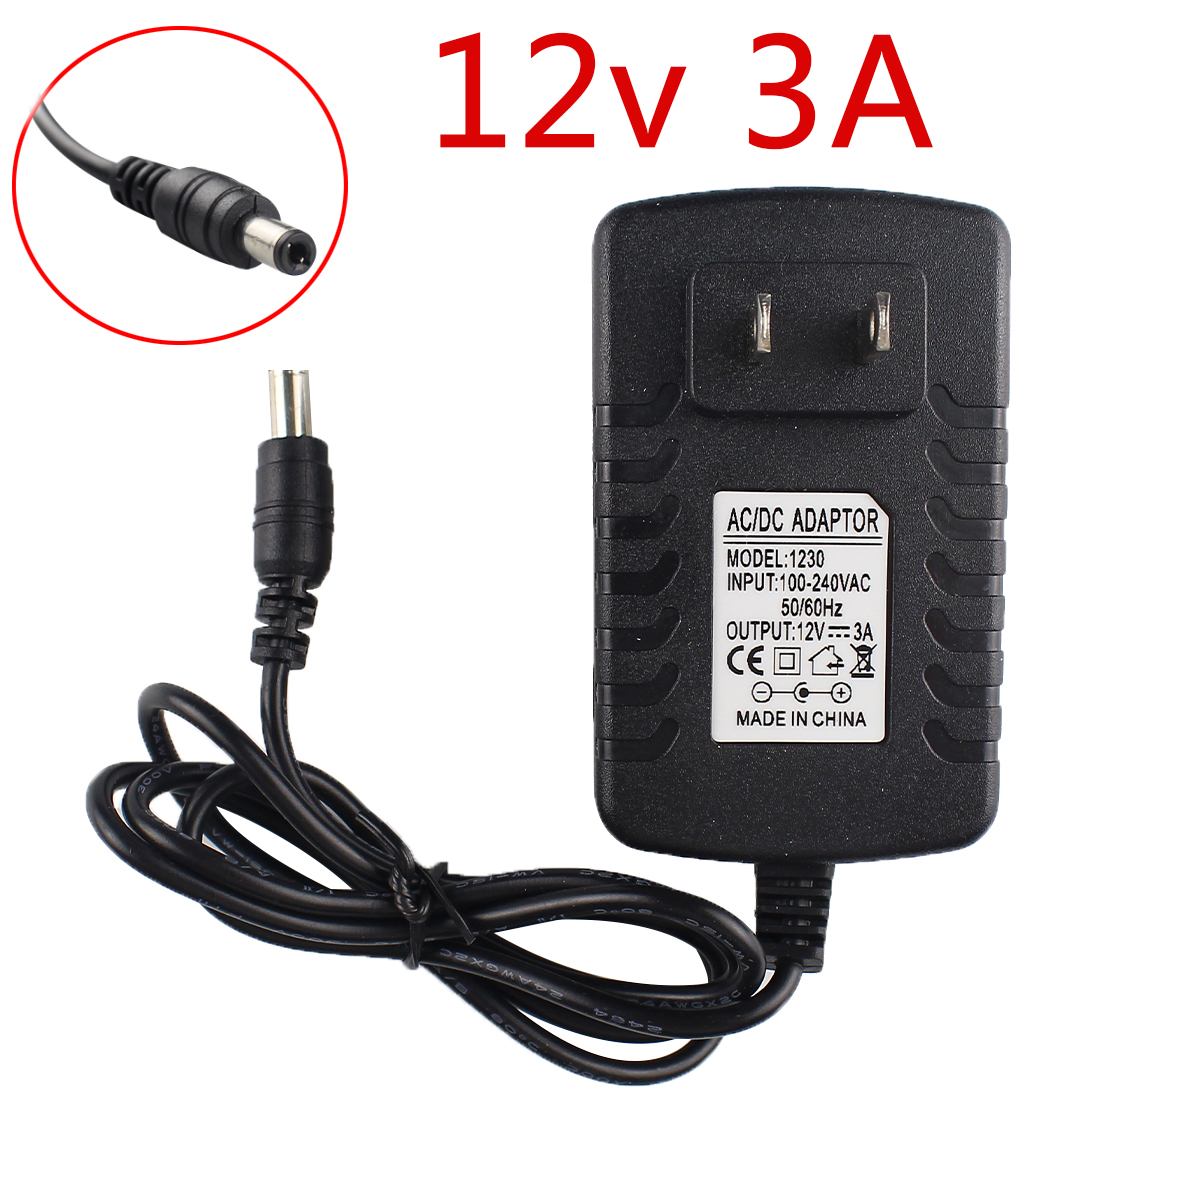 POWER SUPPLY FOR THE YAMAHA DJX IIB MIXER ADAPTER CABLE UK 12V 2A